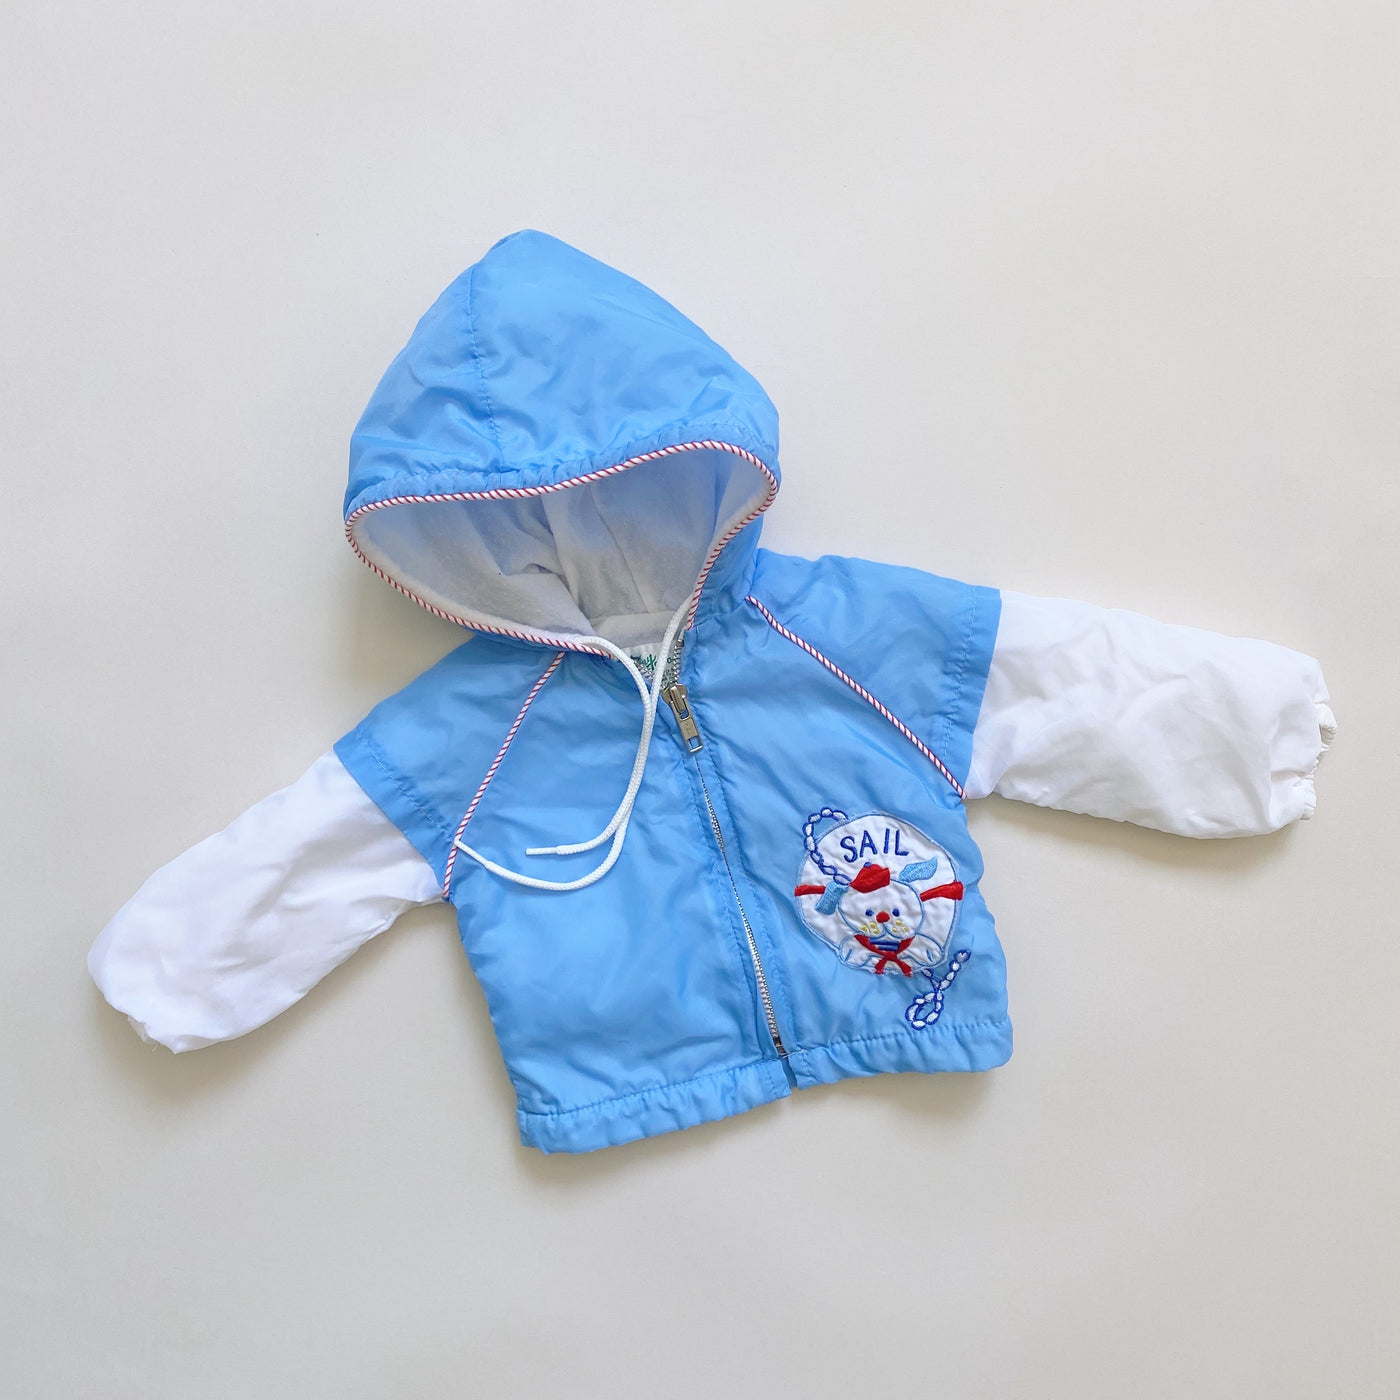 Vintage Puppy Sailing Jacket / Size 3-6M